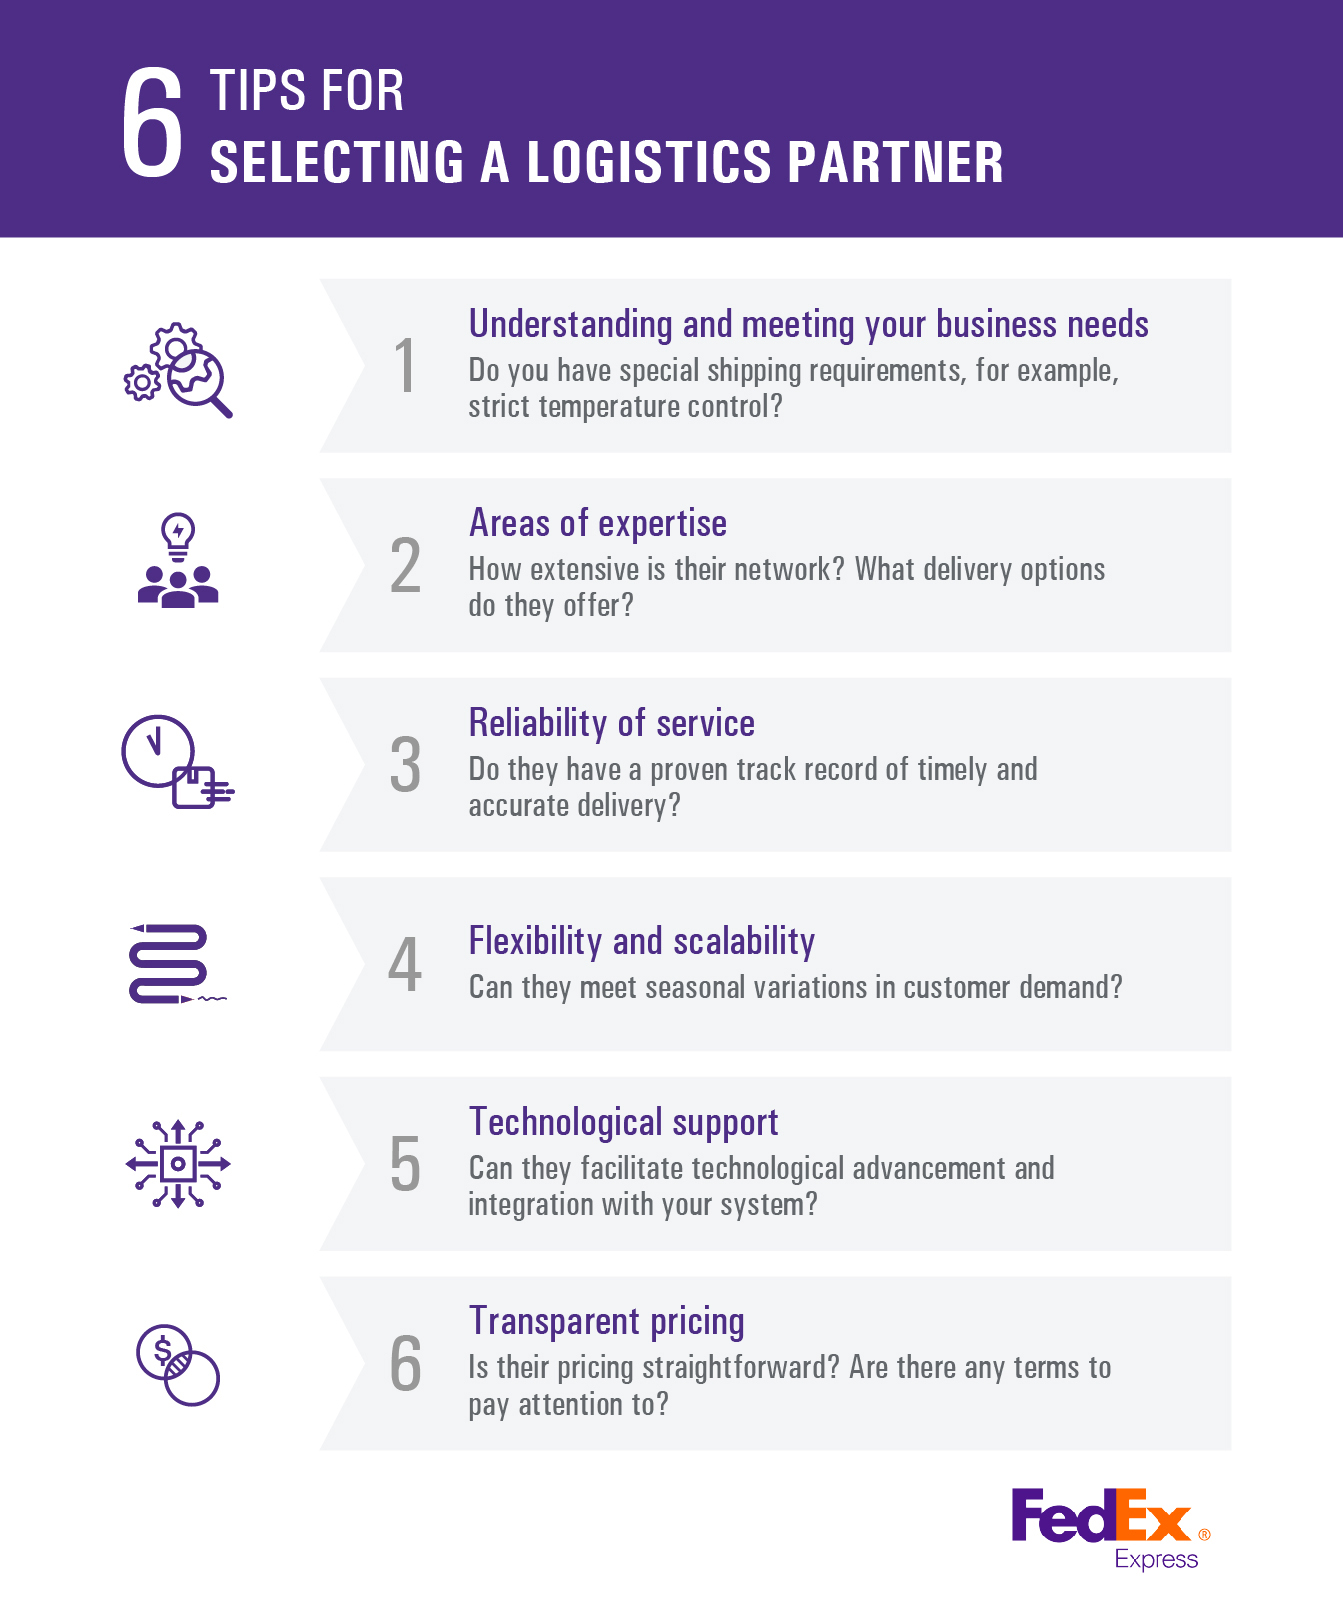 6 Tips for selecting a logistics partner